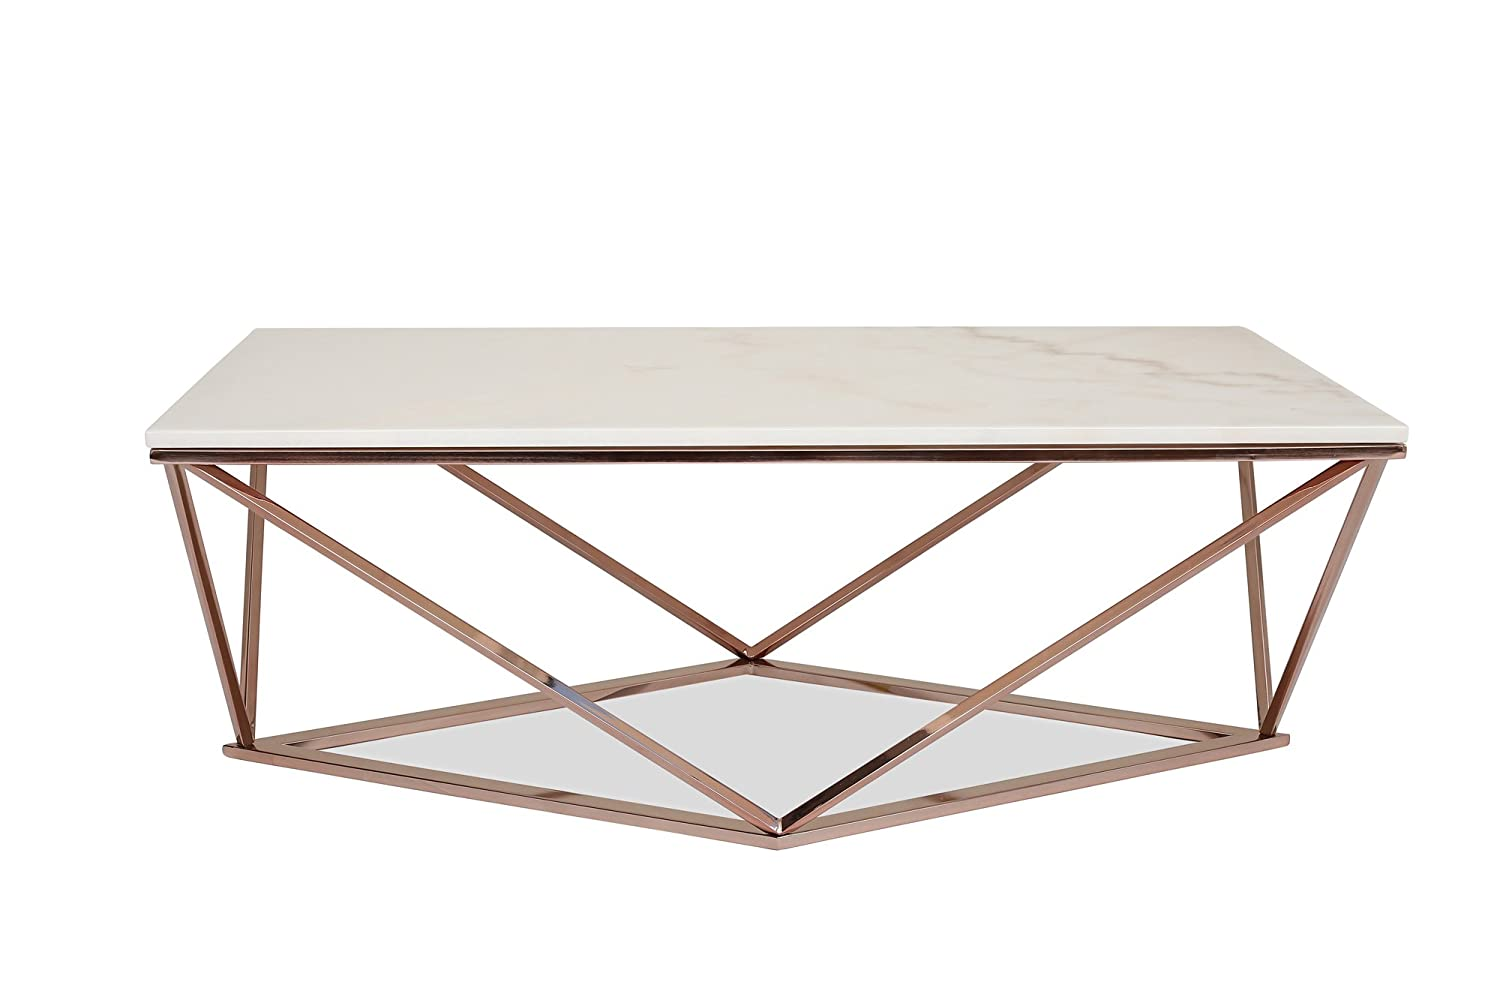 Edloe Finch Modern Marble Coffee Table - Rose Gold Cocktail Tables for Living Room, White